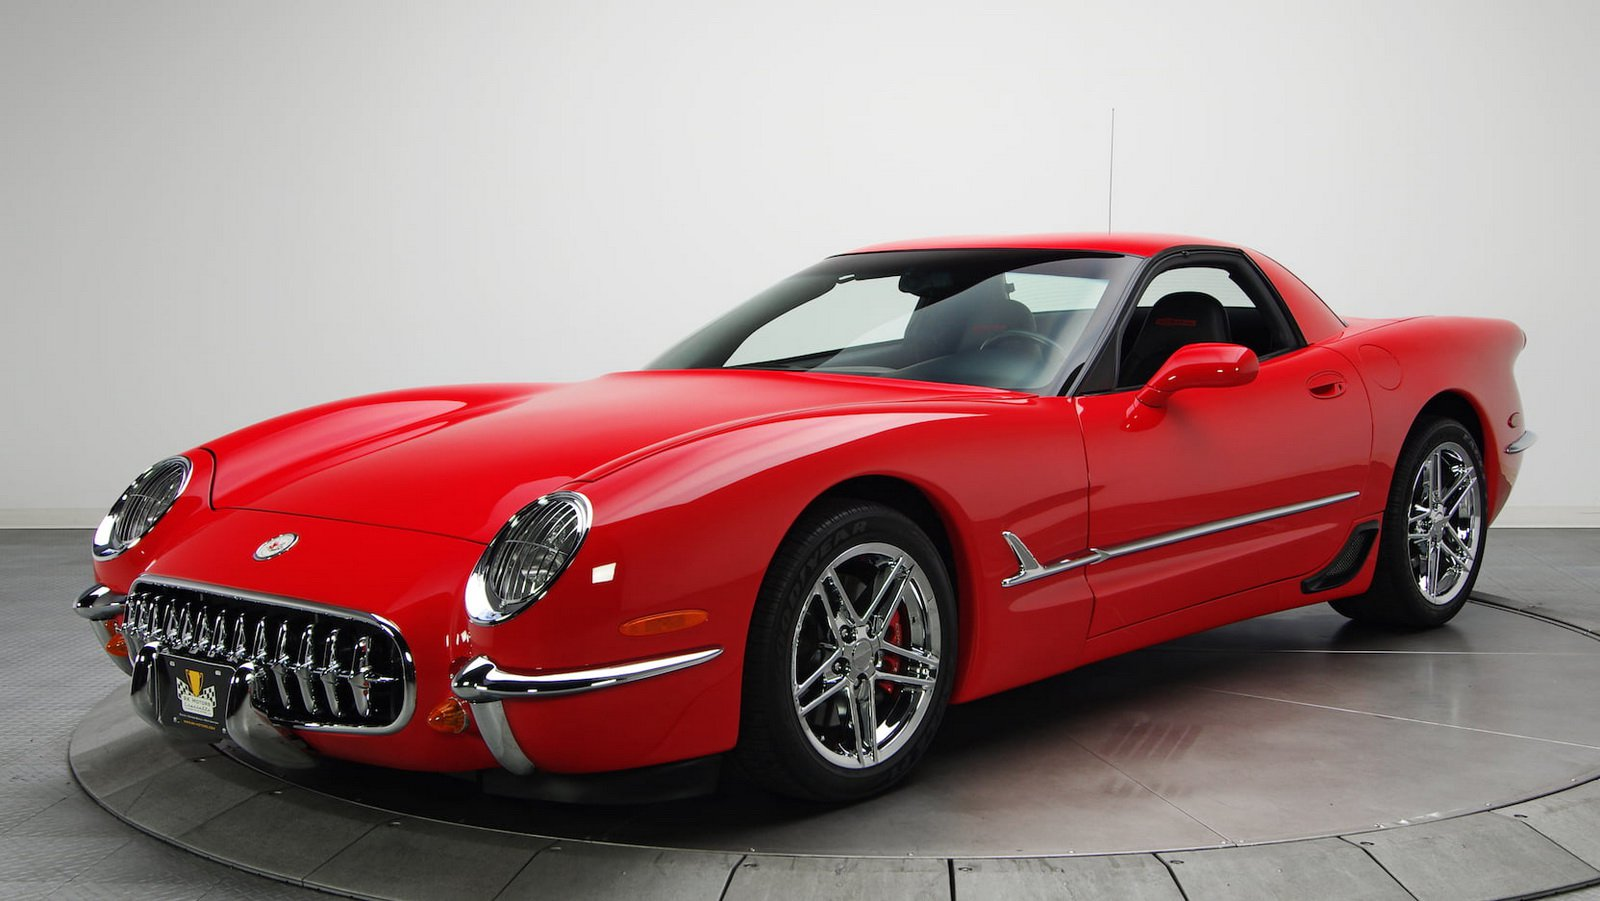 C5 Corvette Z06 1953 Commemorative Edition By AAT Heading To